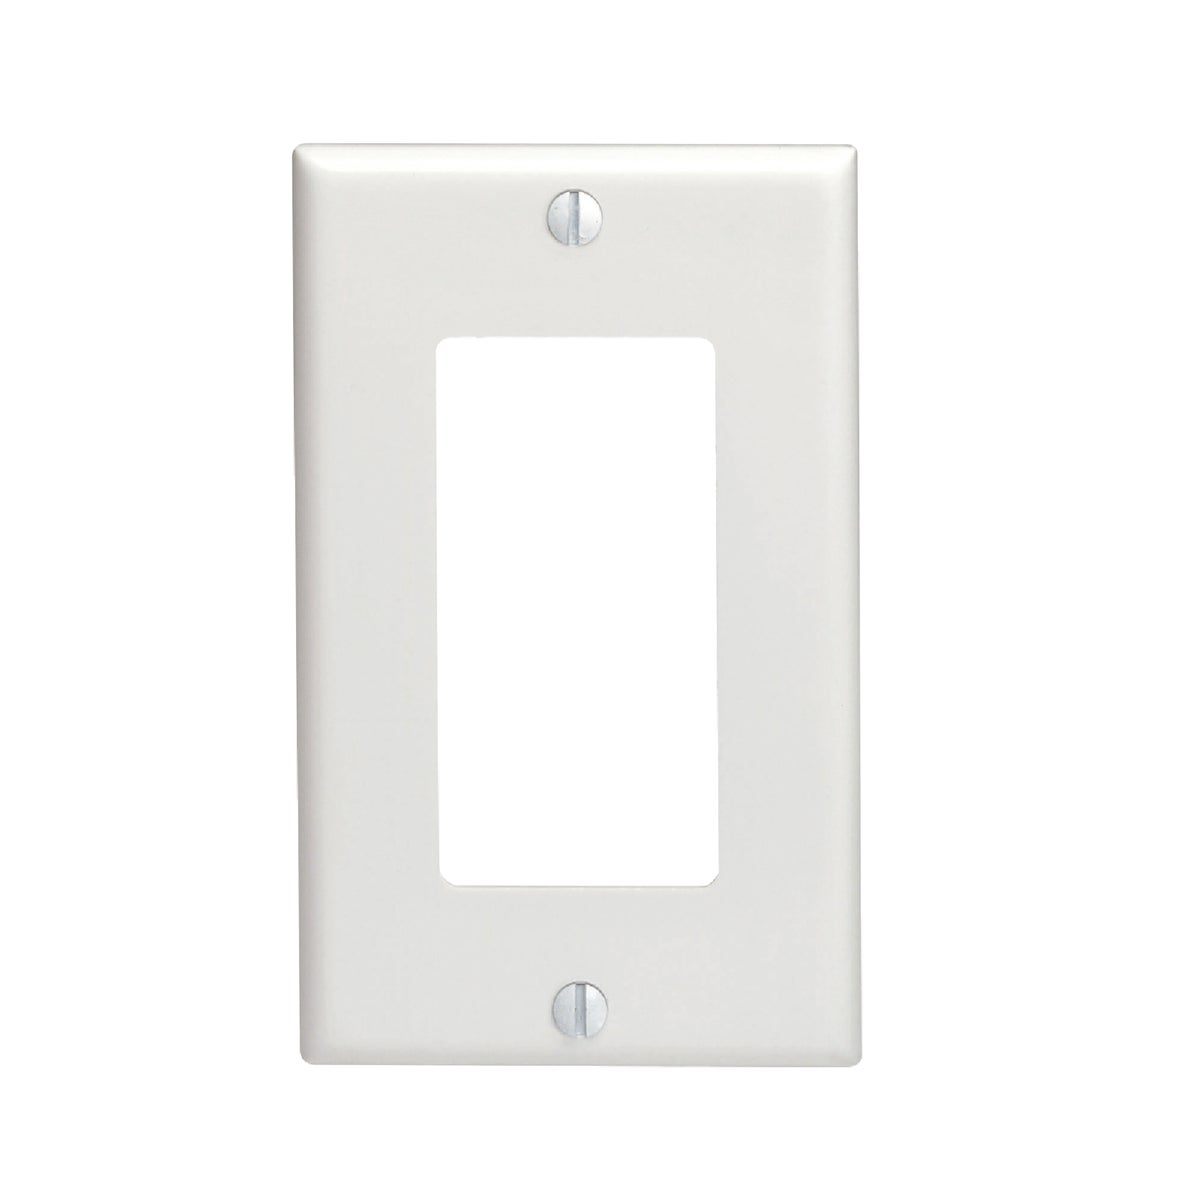 WHT WALL PLATE - 80401NW by Leviton Mfg Co